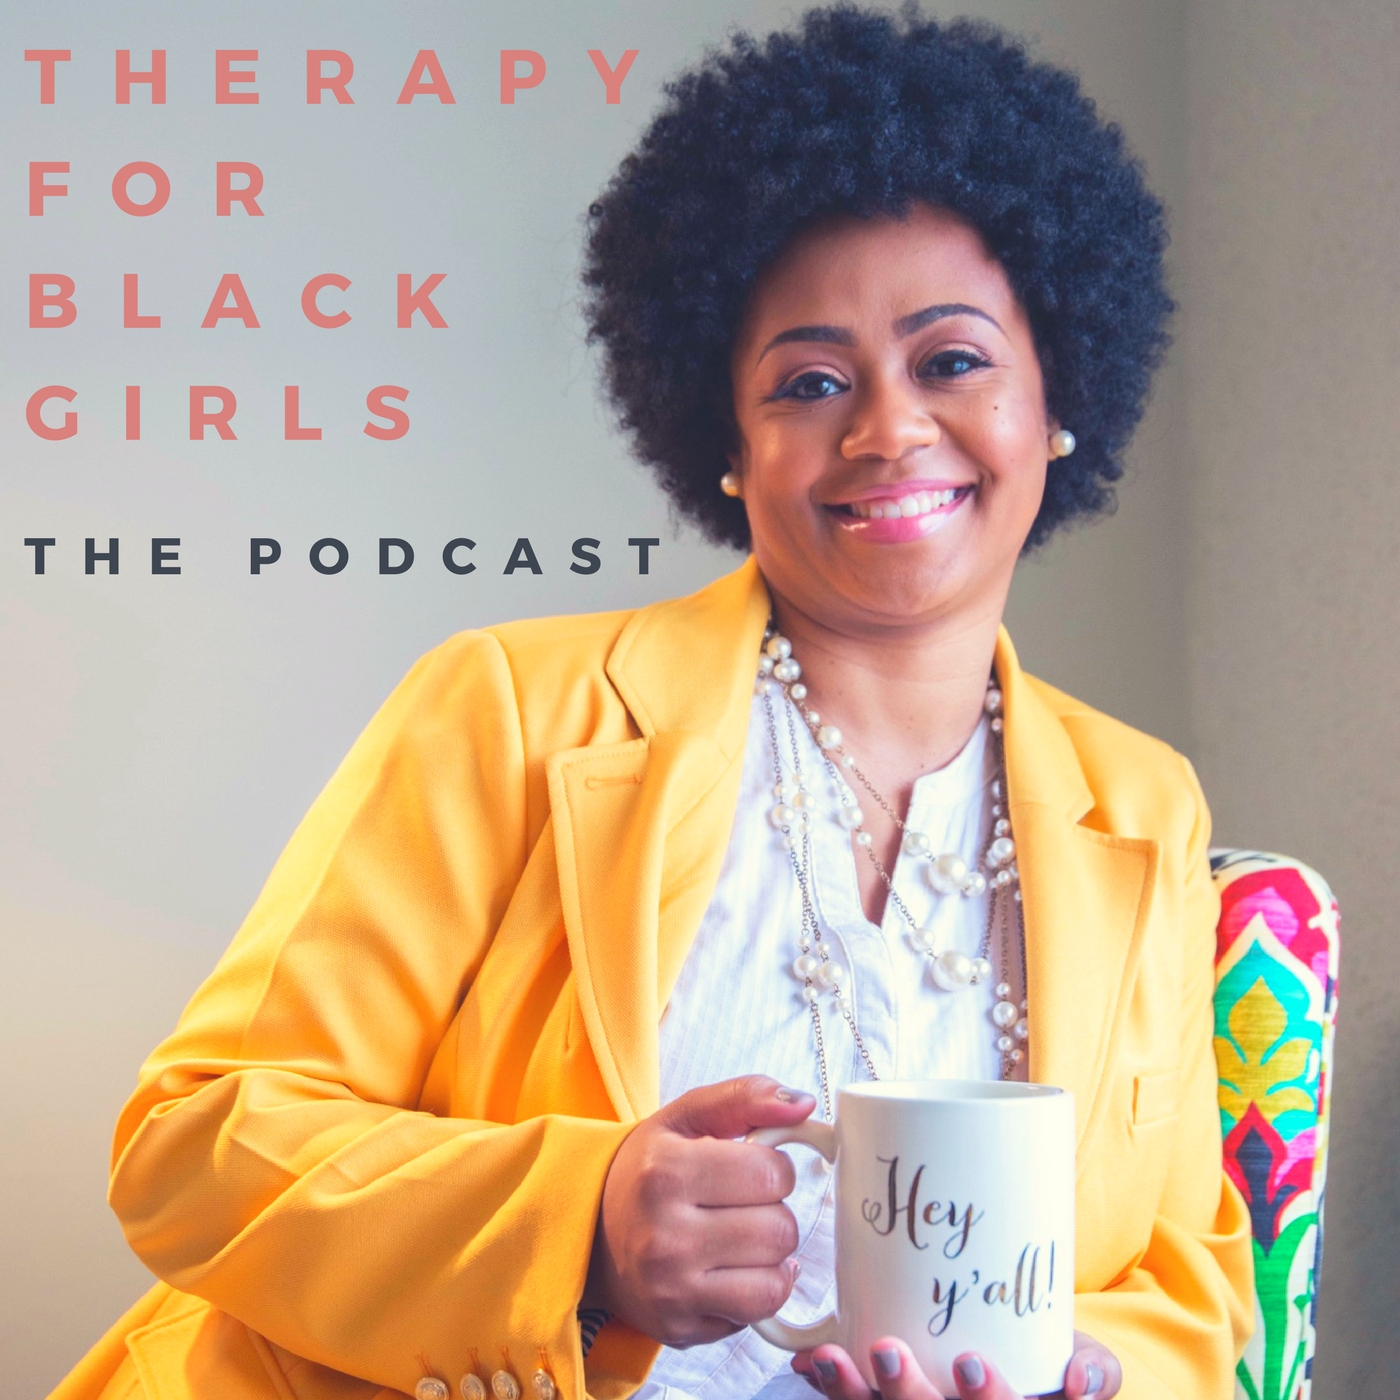 JasmineGurley.com-Podcasts-Therapy for Black Girls.png